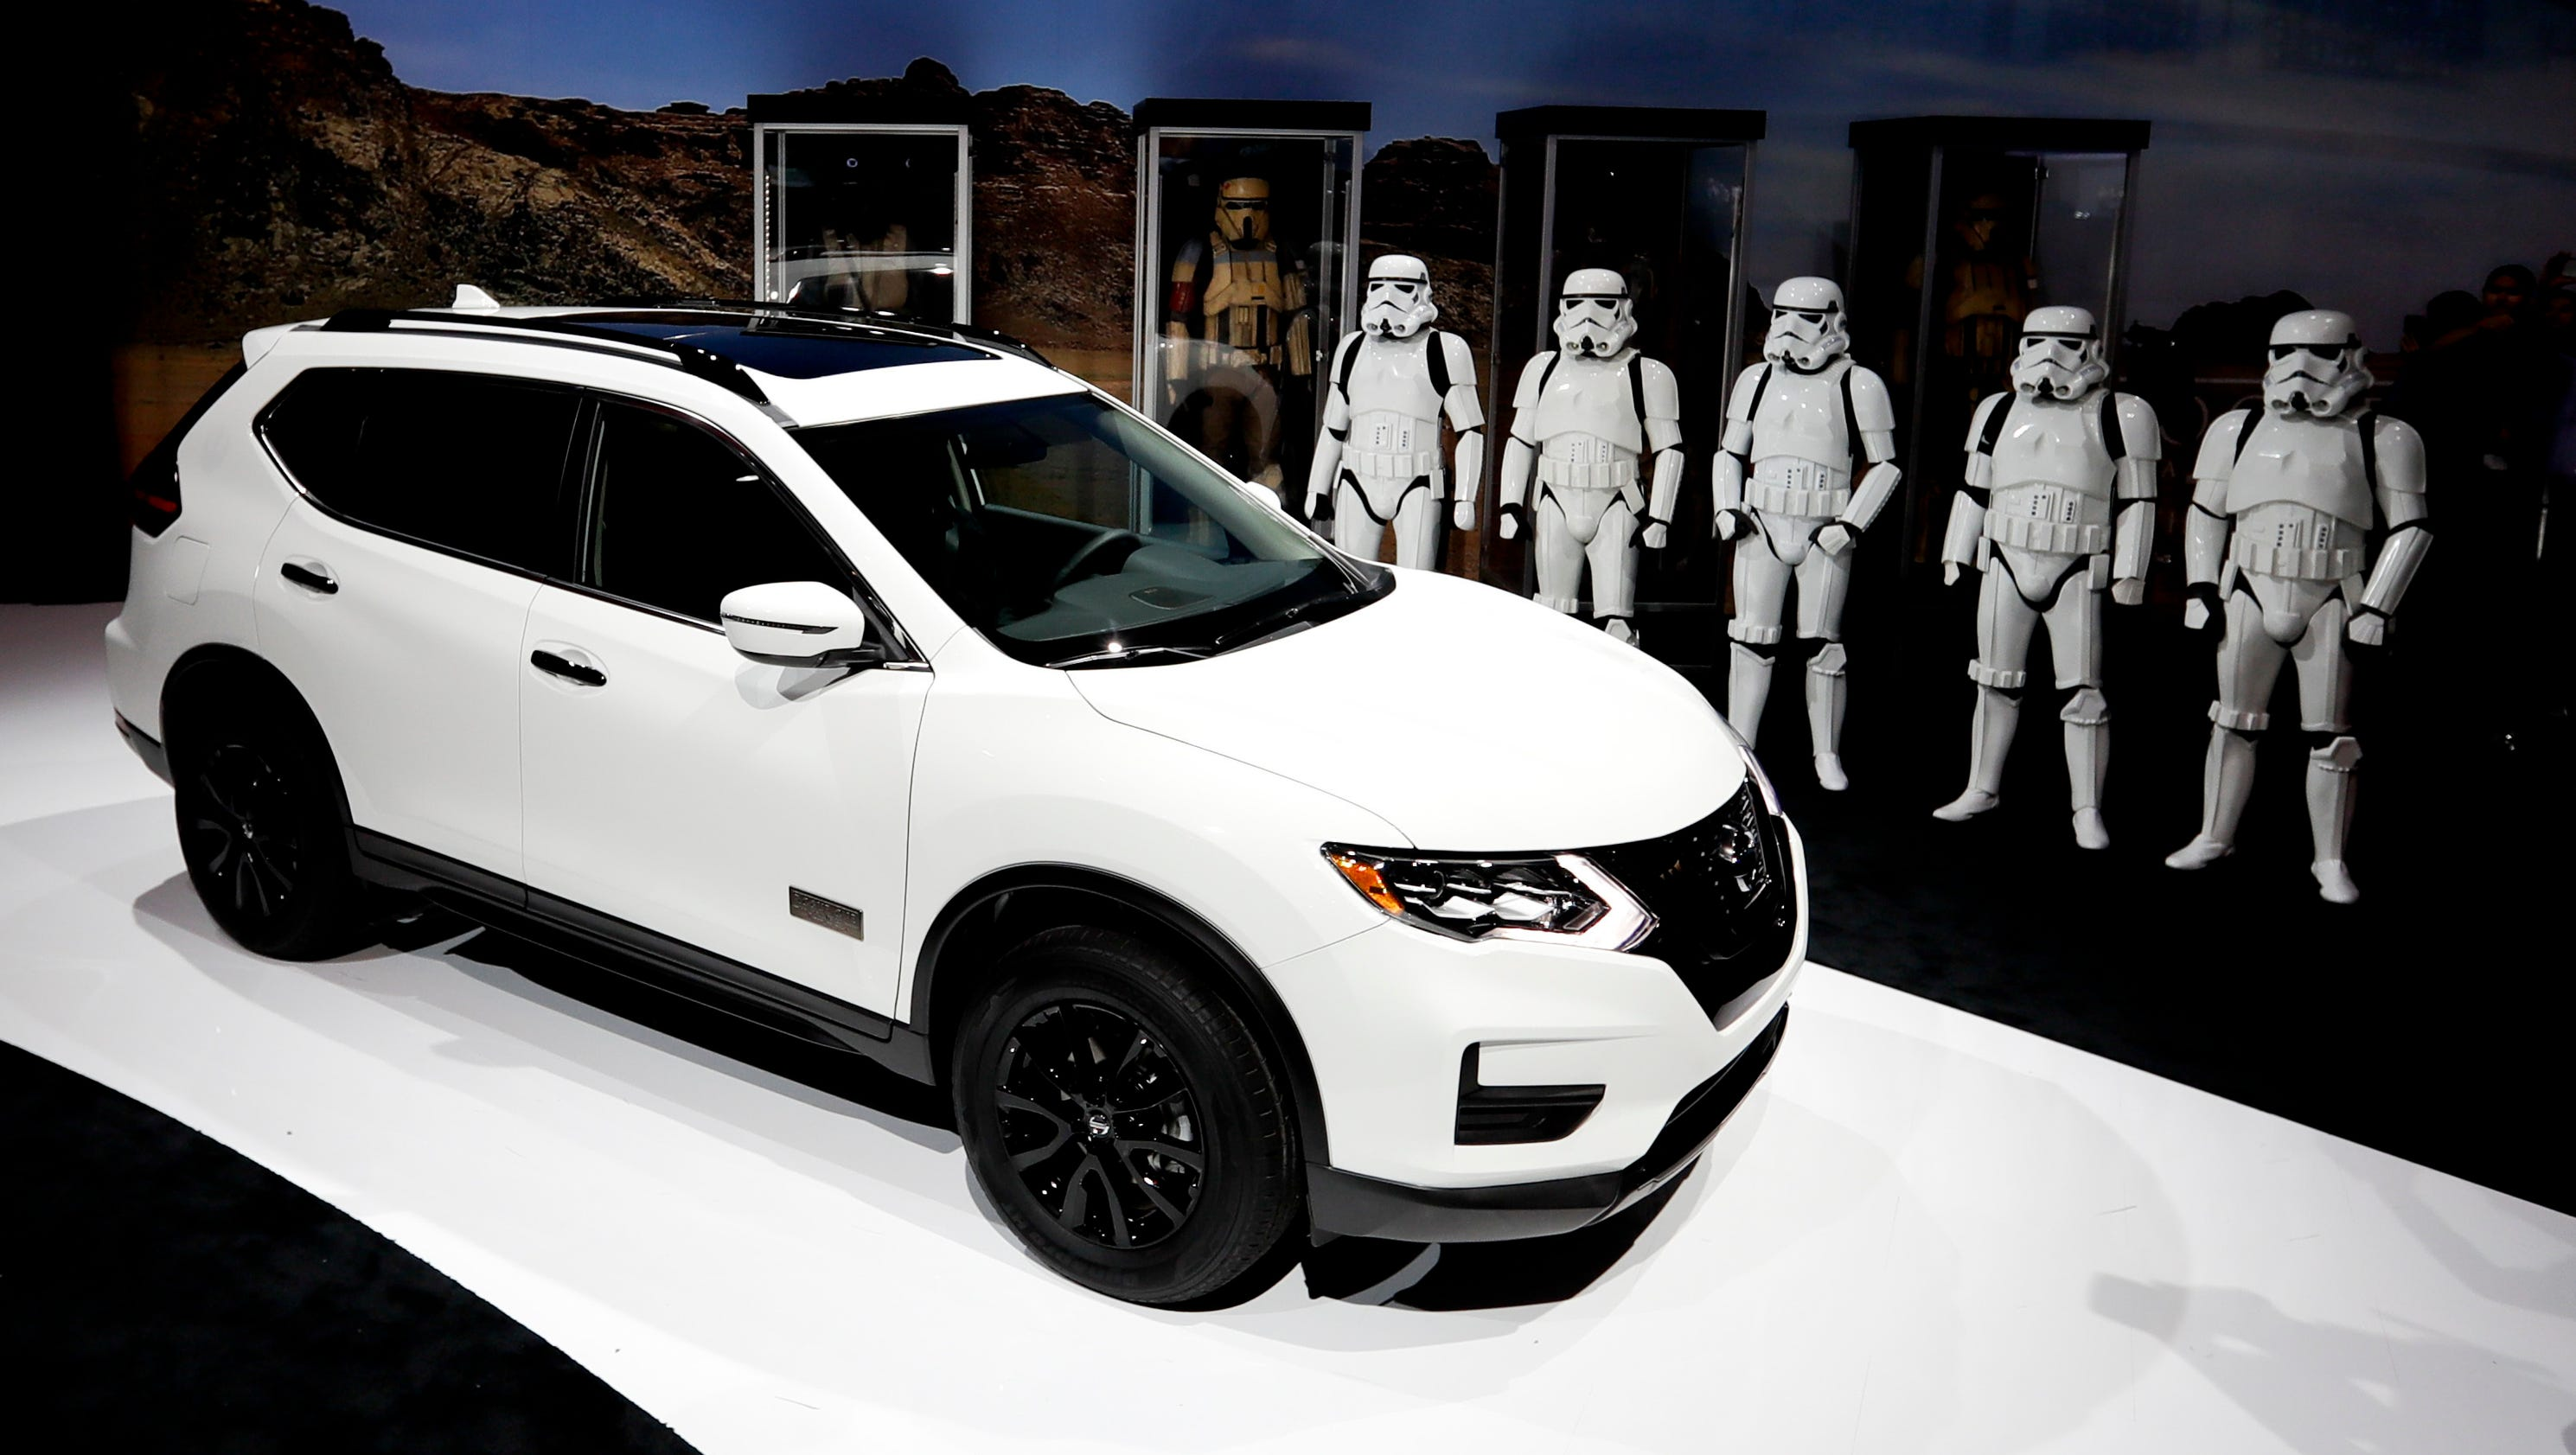 Nissan create Rogue e SUV for Star Wars fans